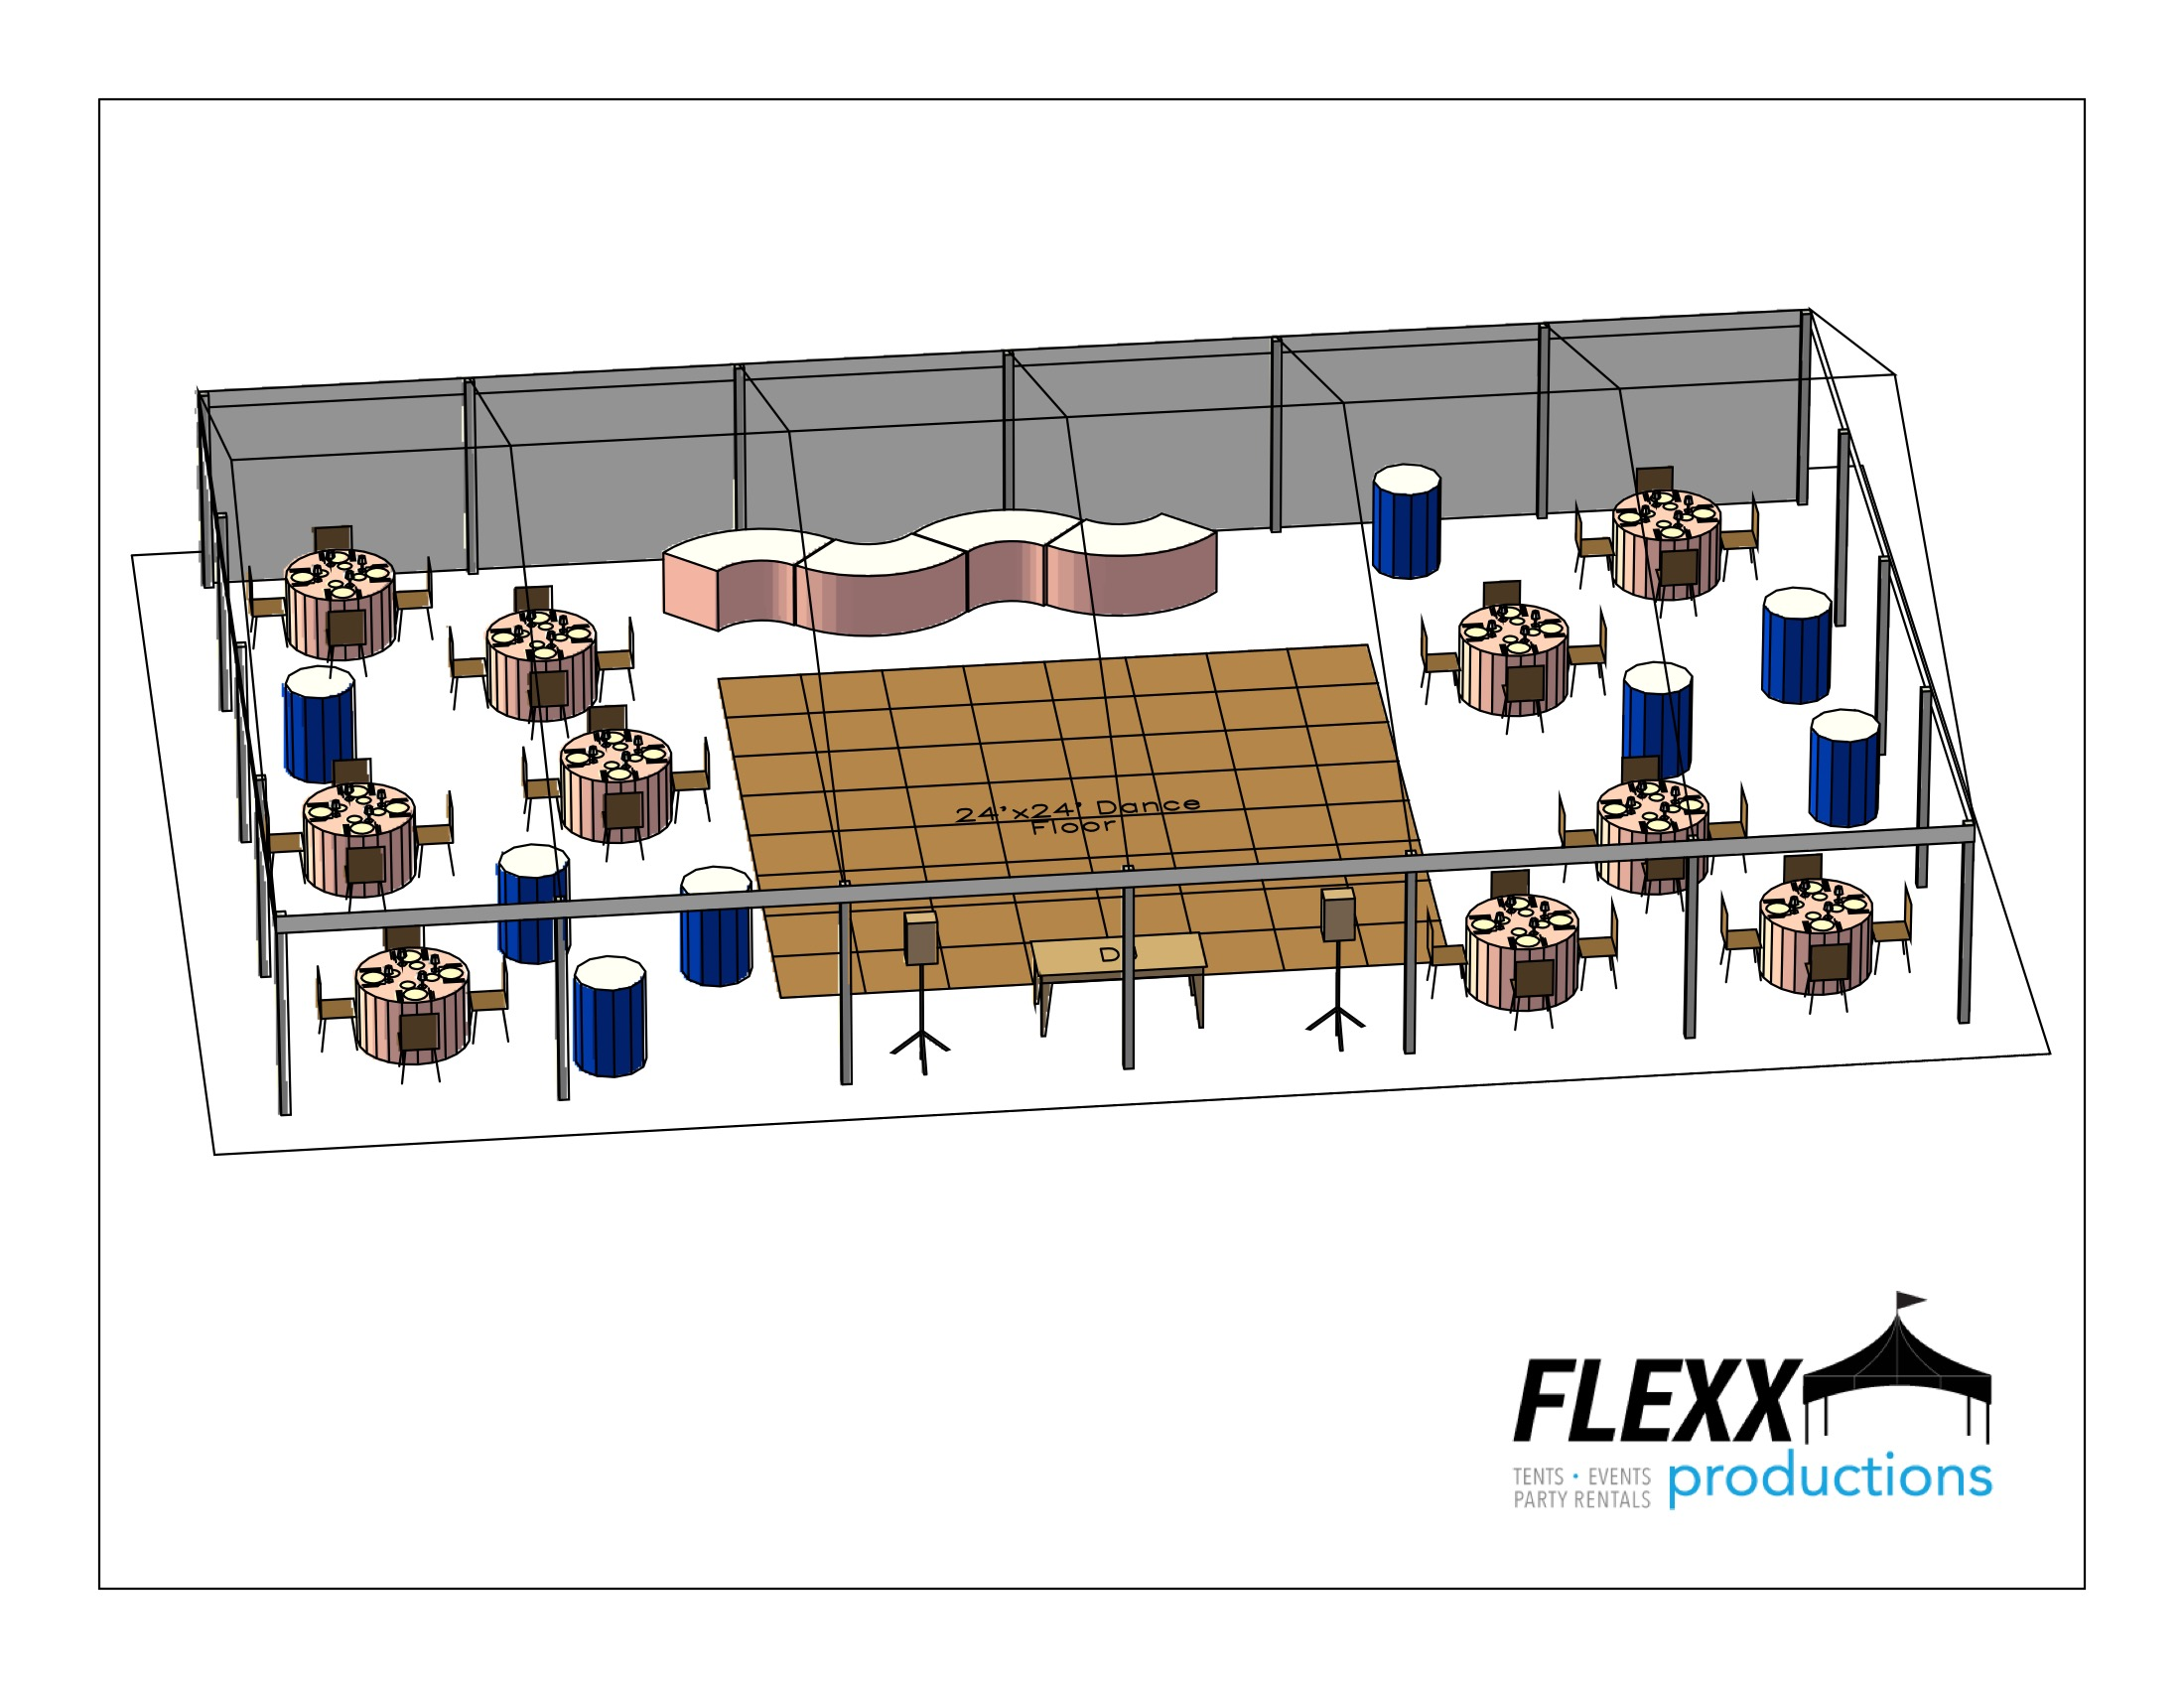 40x60 Flexx Productions Clearspan Tent Layout